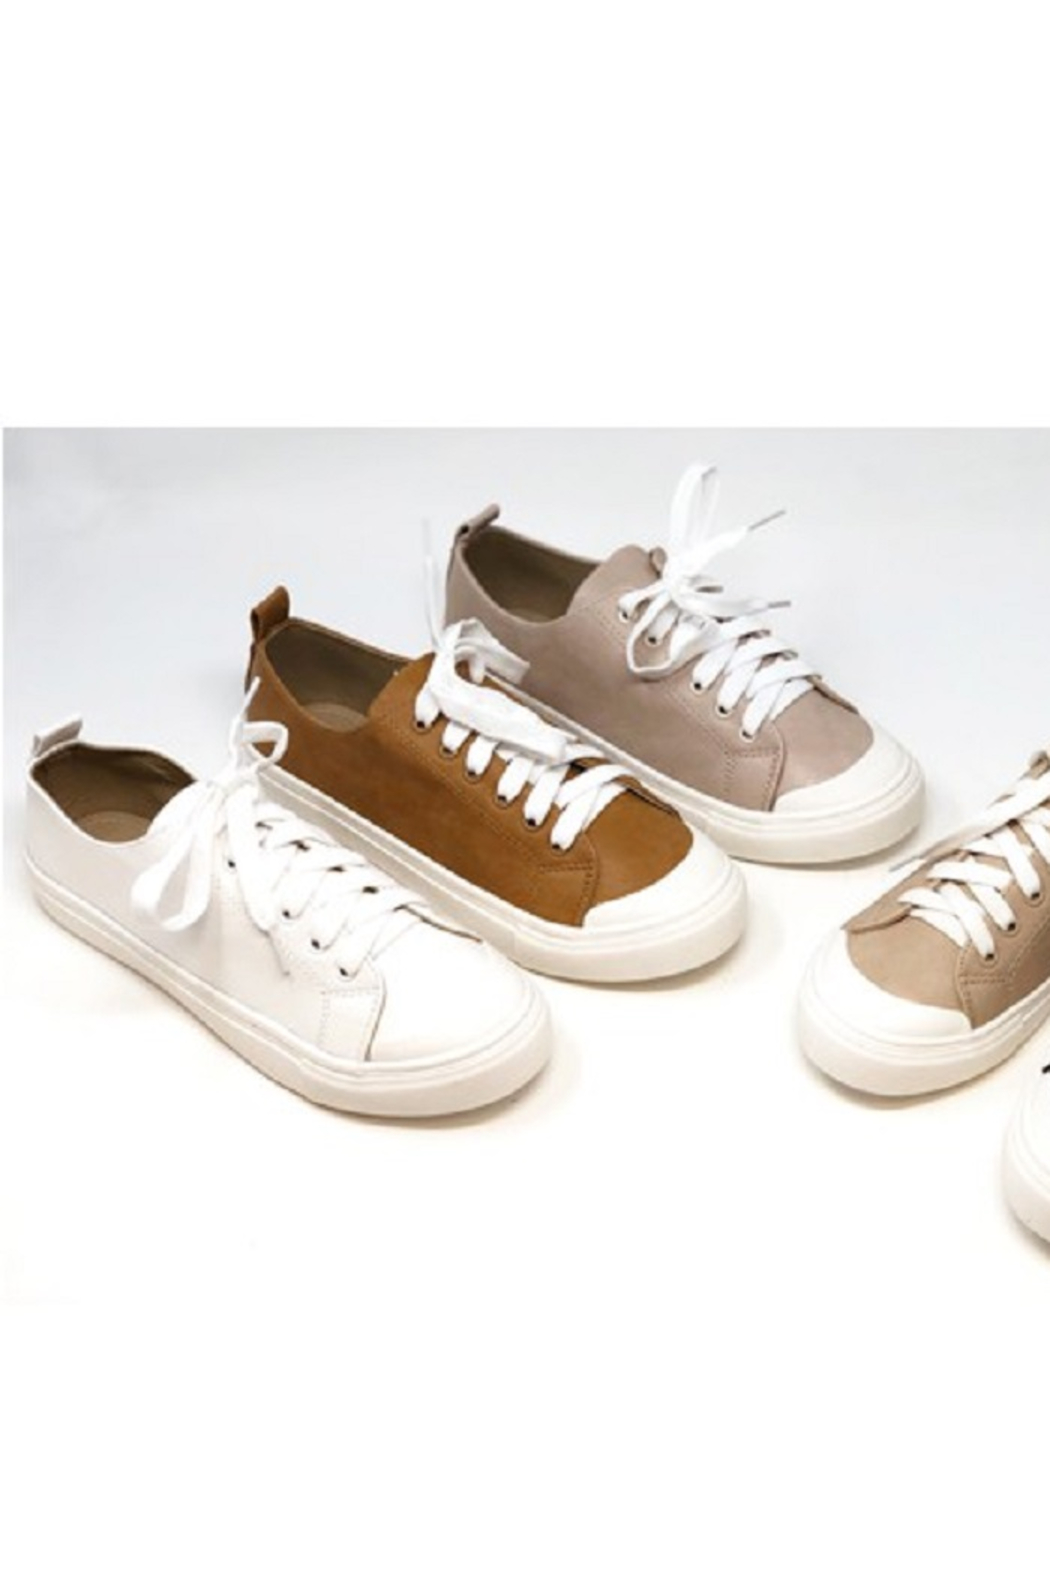 Ccocci Lace-Up Casual Sneaker - Main Image